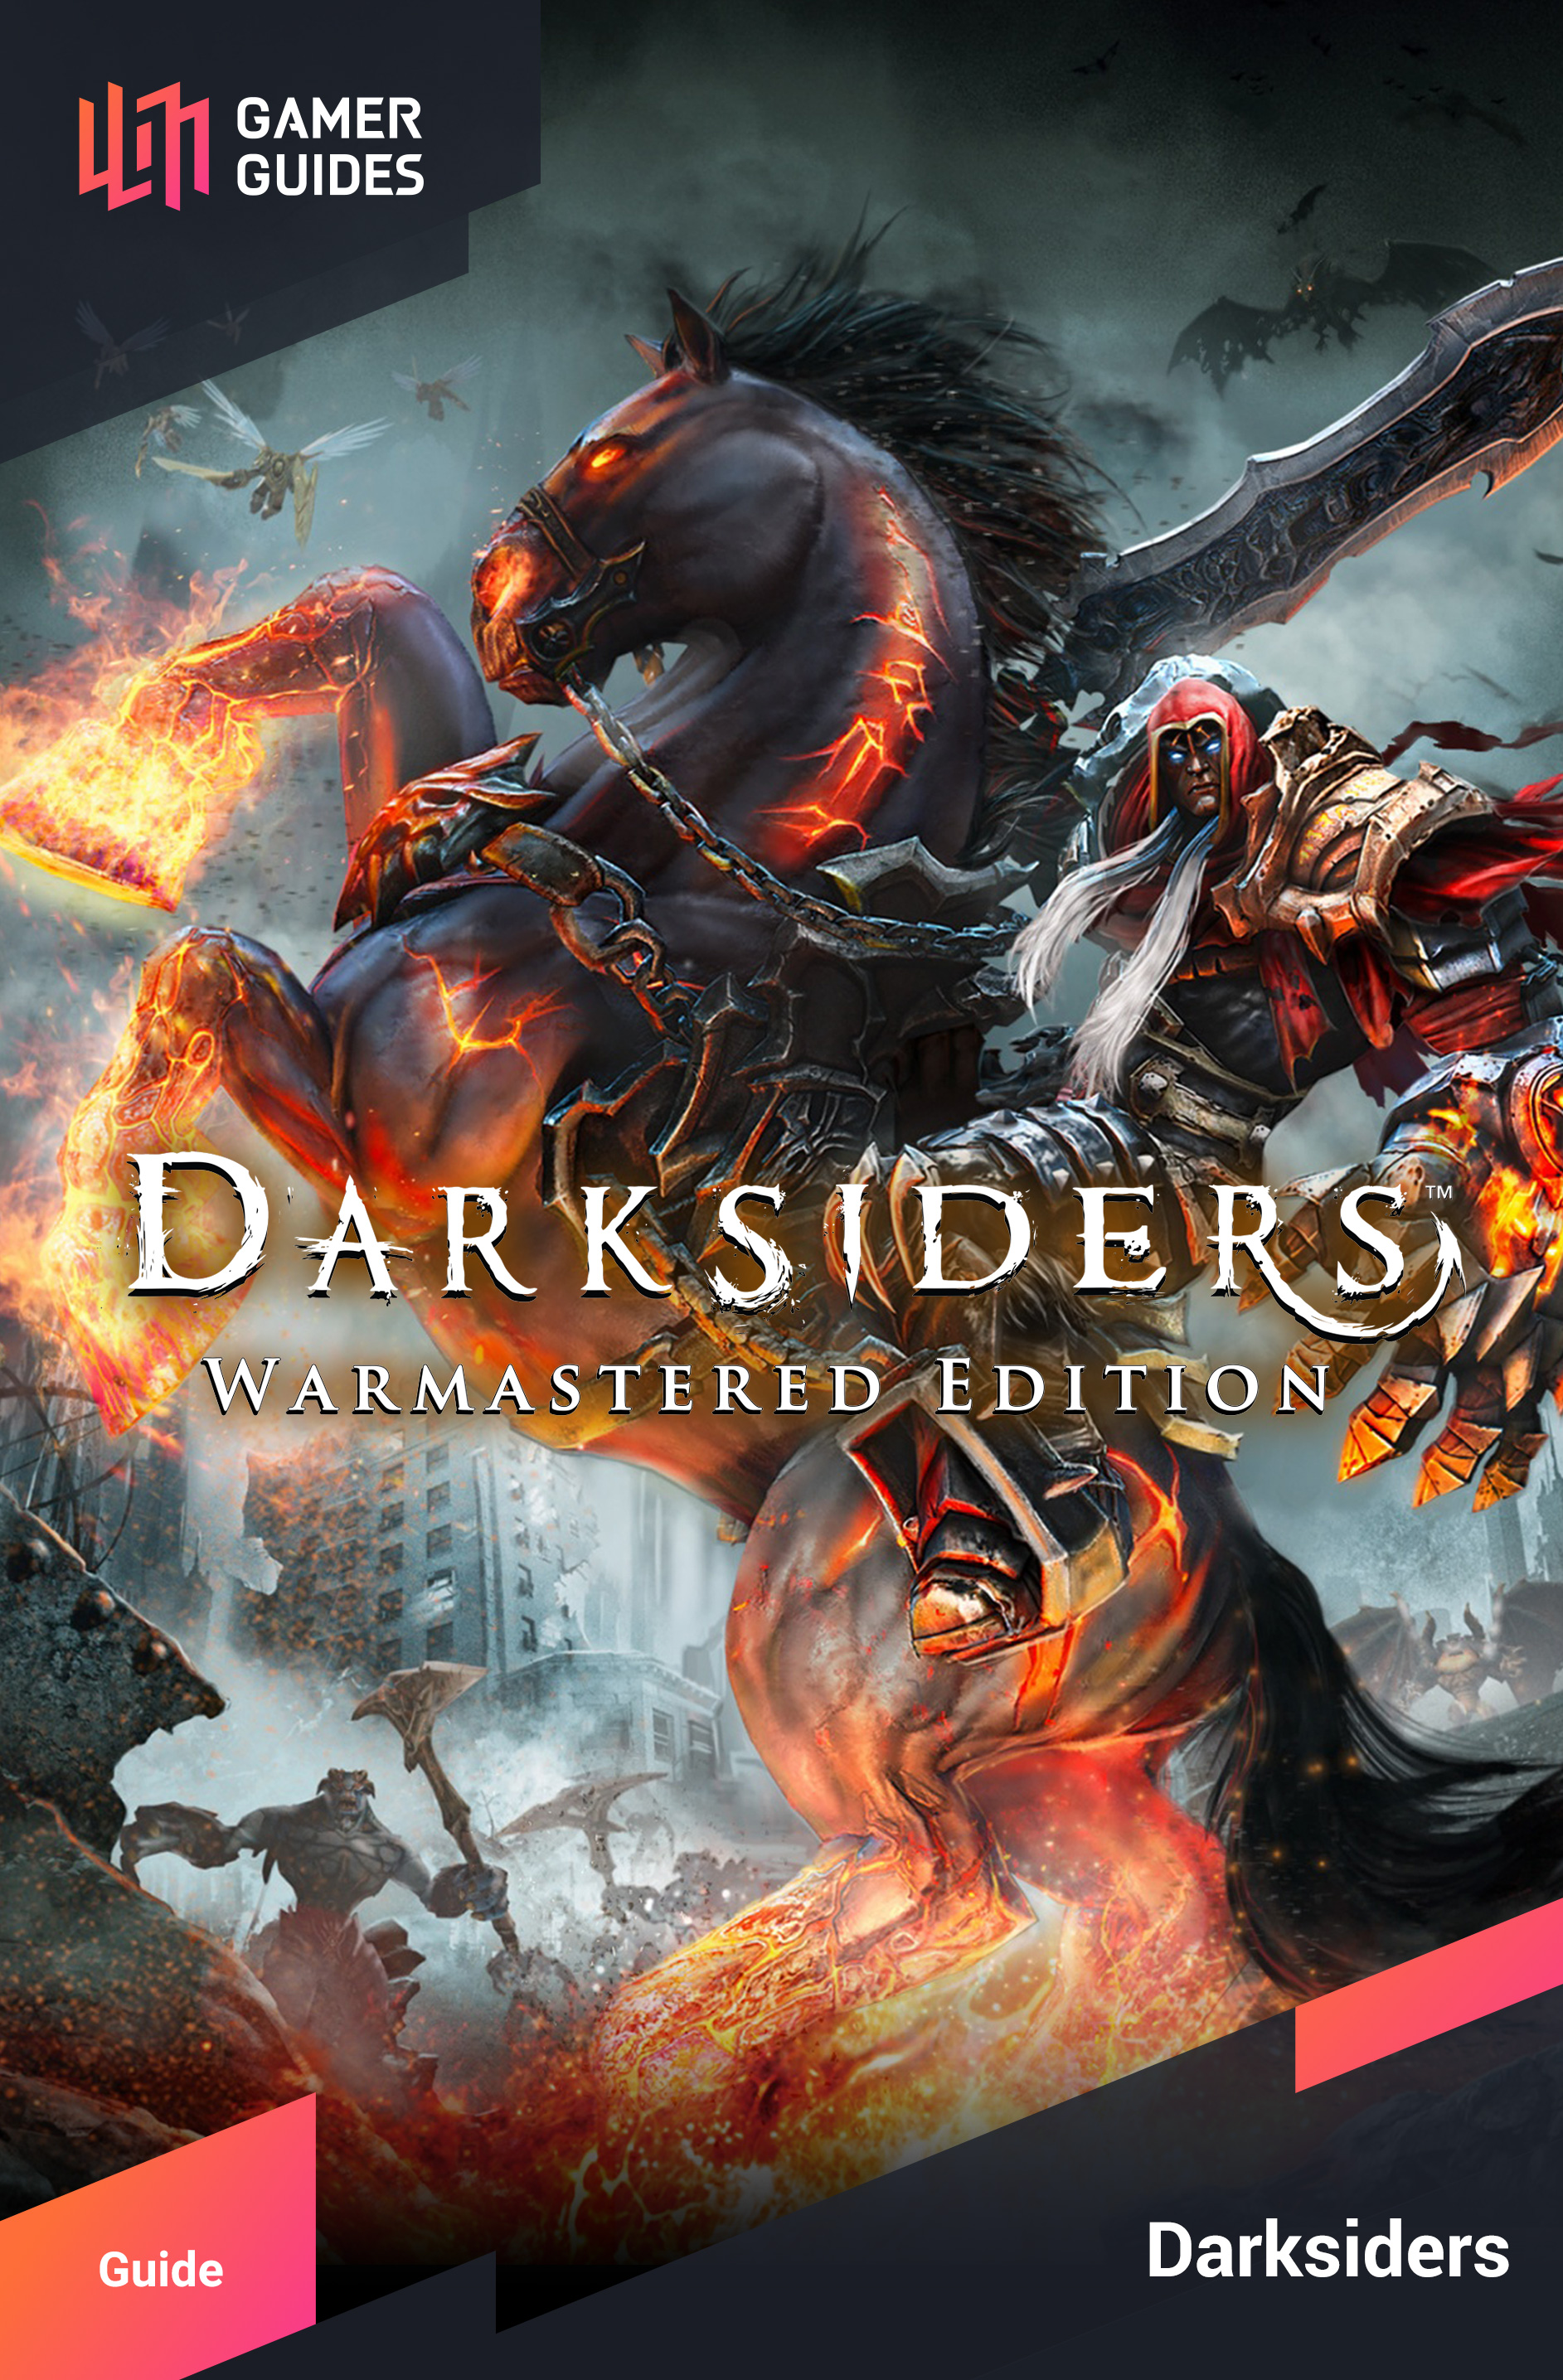 Darksiders | Gamer Guides